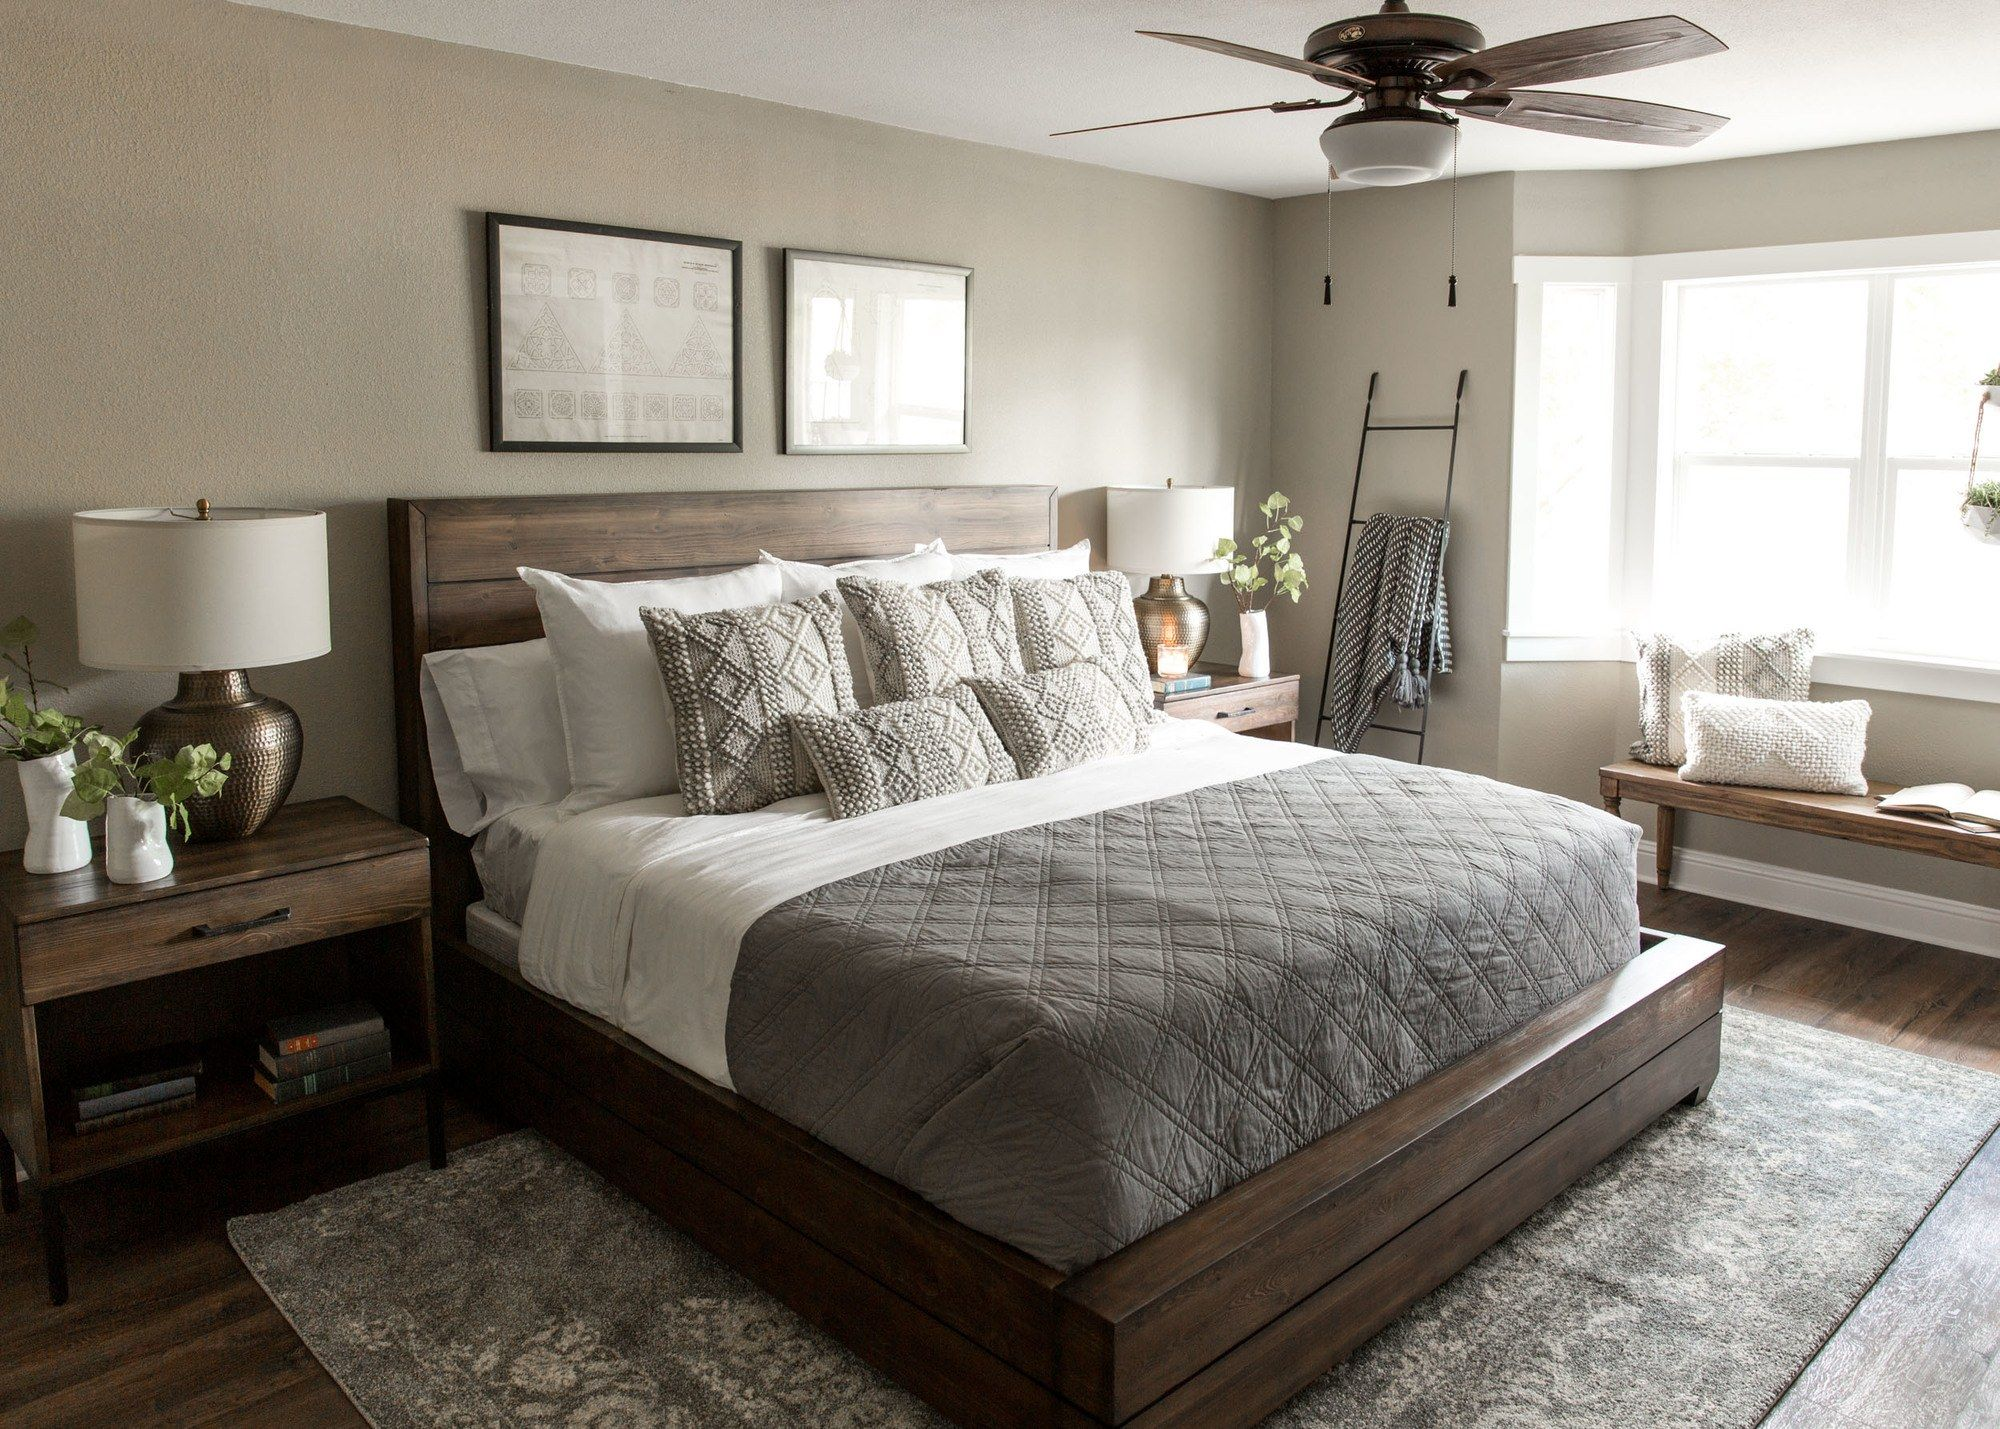 season 4 fixer upper episode 7 chip joanna gaines the mexia major house master bedroom waco tx - Joanna Gaines Bedroom